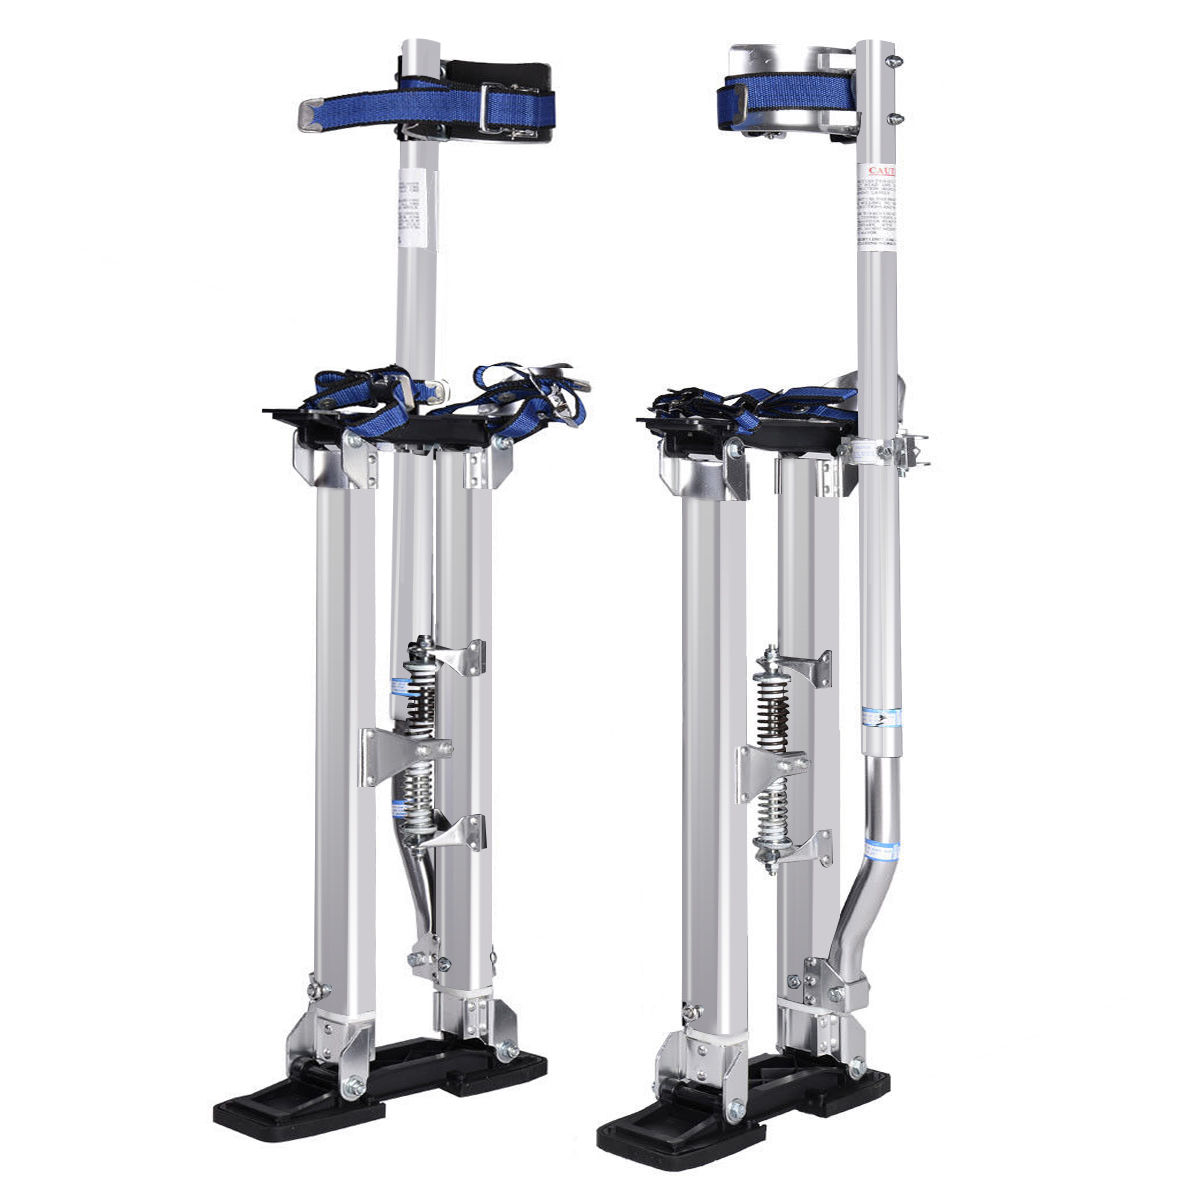 Costway 18-30 Inch Drywall Stilts Aluminum Tool Painters Walking Taping Finishing Silver by Costway